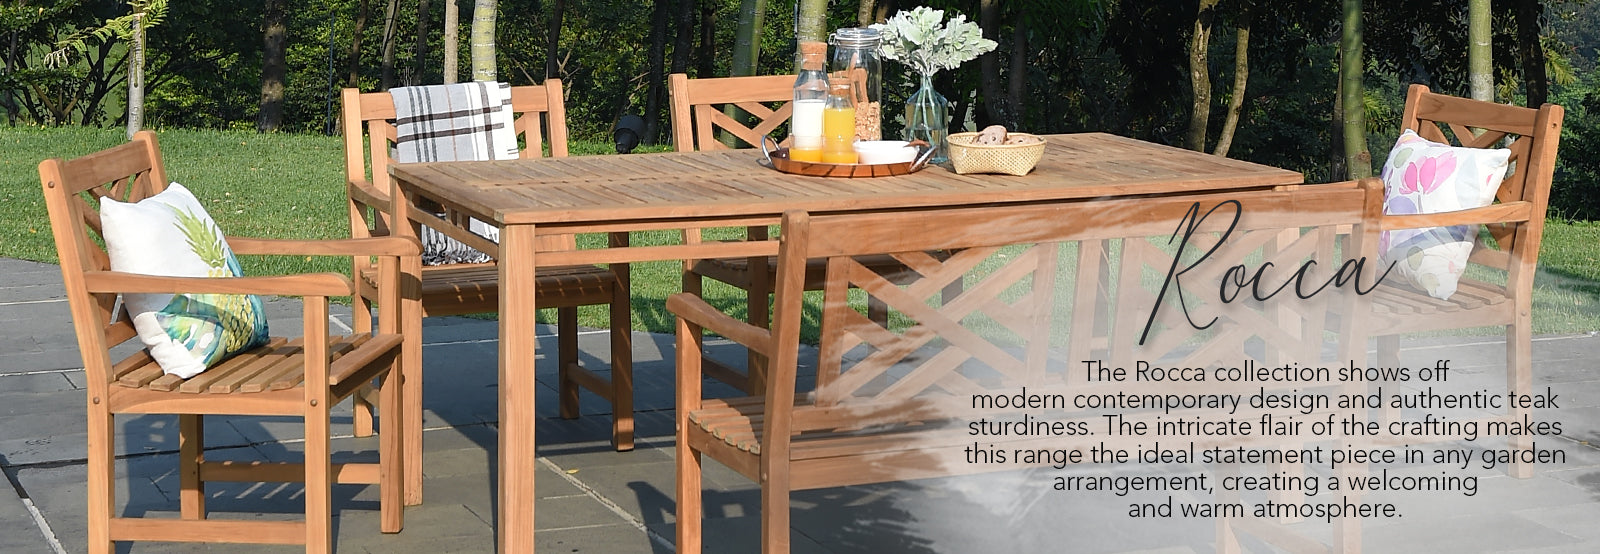 Shop the Rocca collection at Cambridge Casual and create the perfect centerpiece for your outdoor dining area.